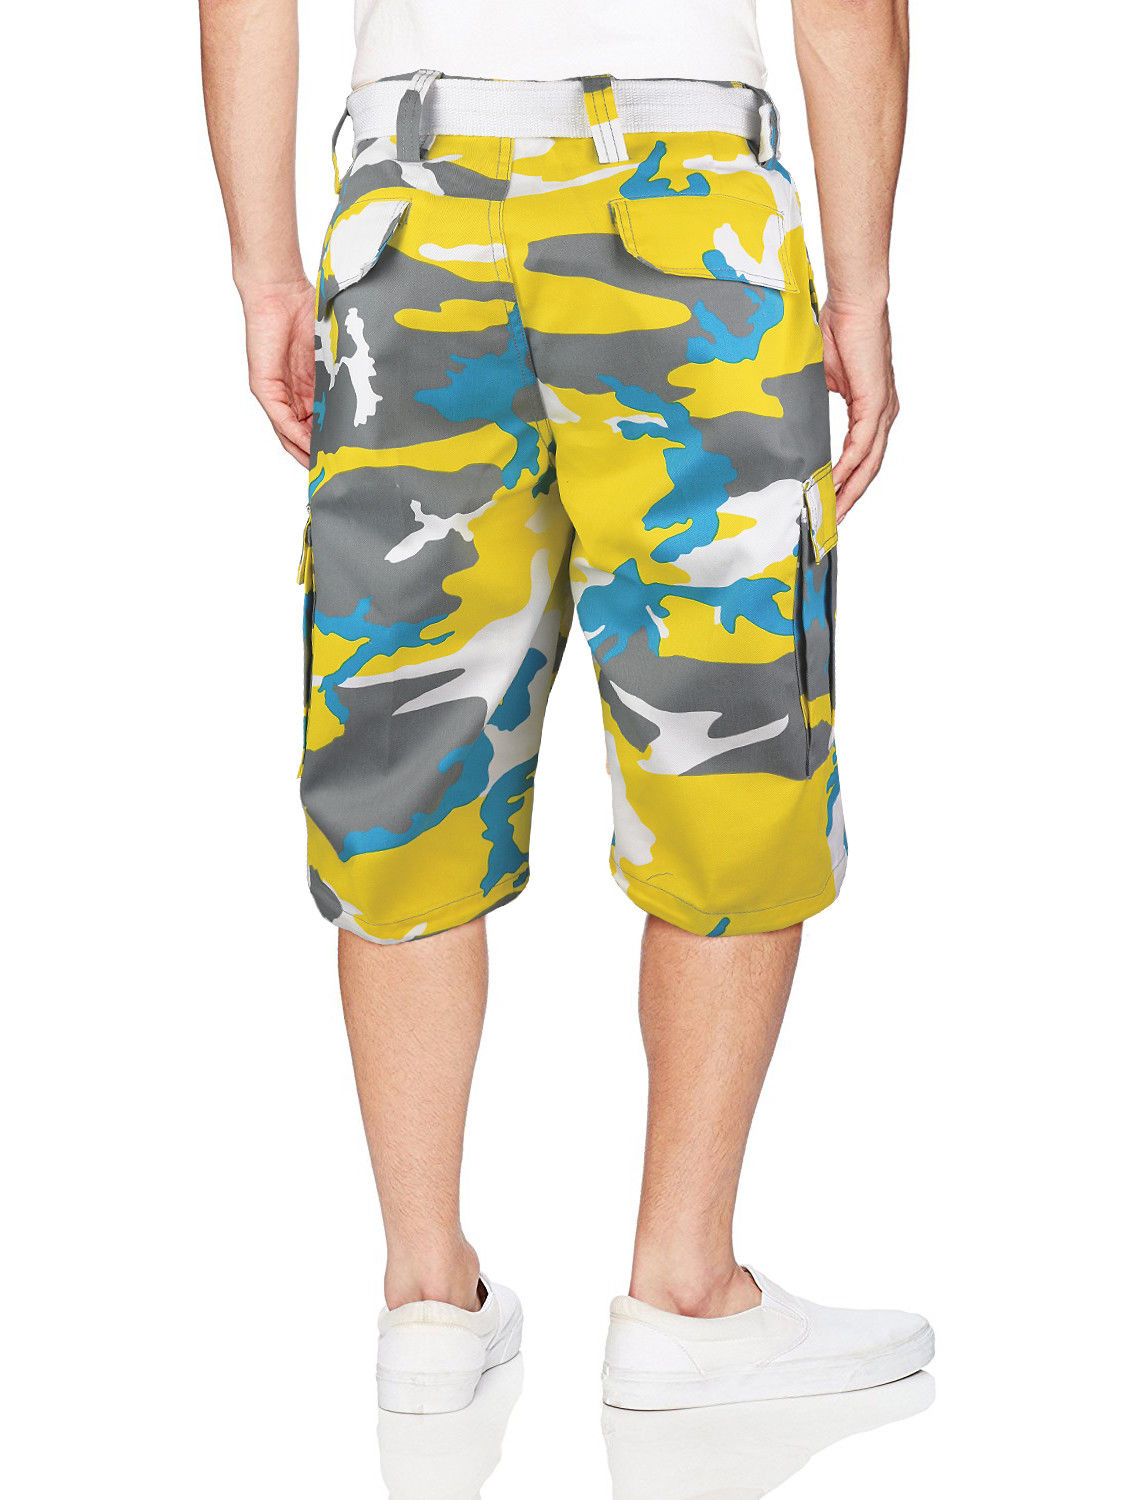 Men-039-s-Tactical-Military-Army-Camo-Camouflage-Slim-Fit-Cargo-Shorts-With-Belt thumbnail 33